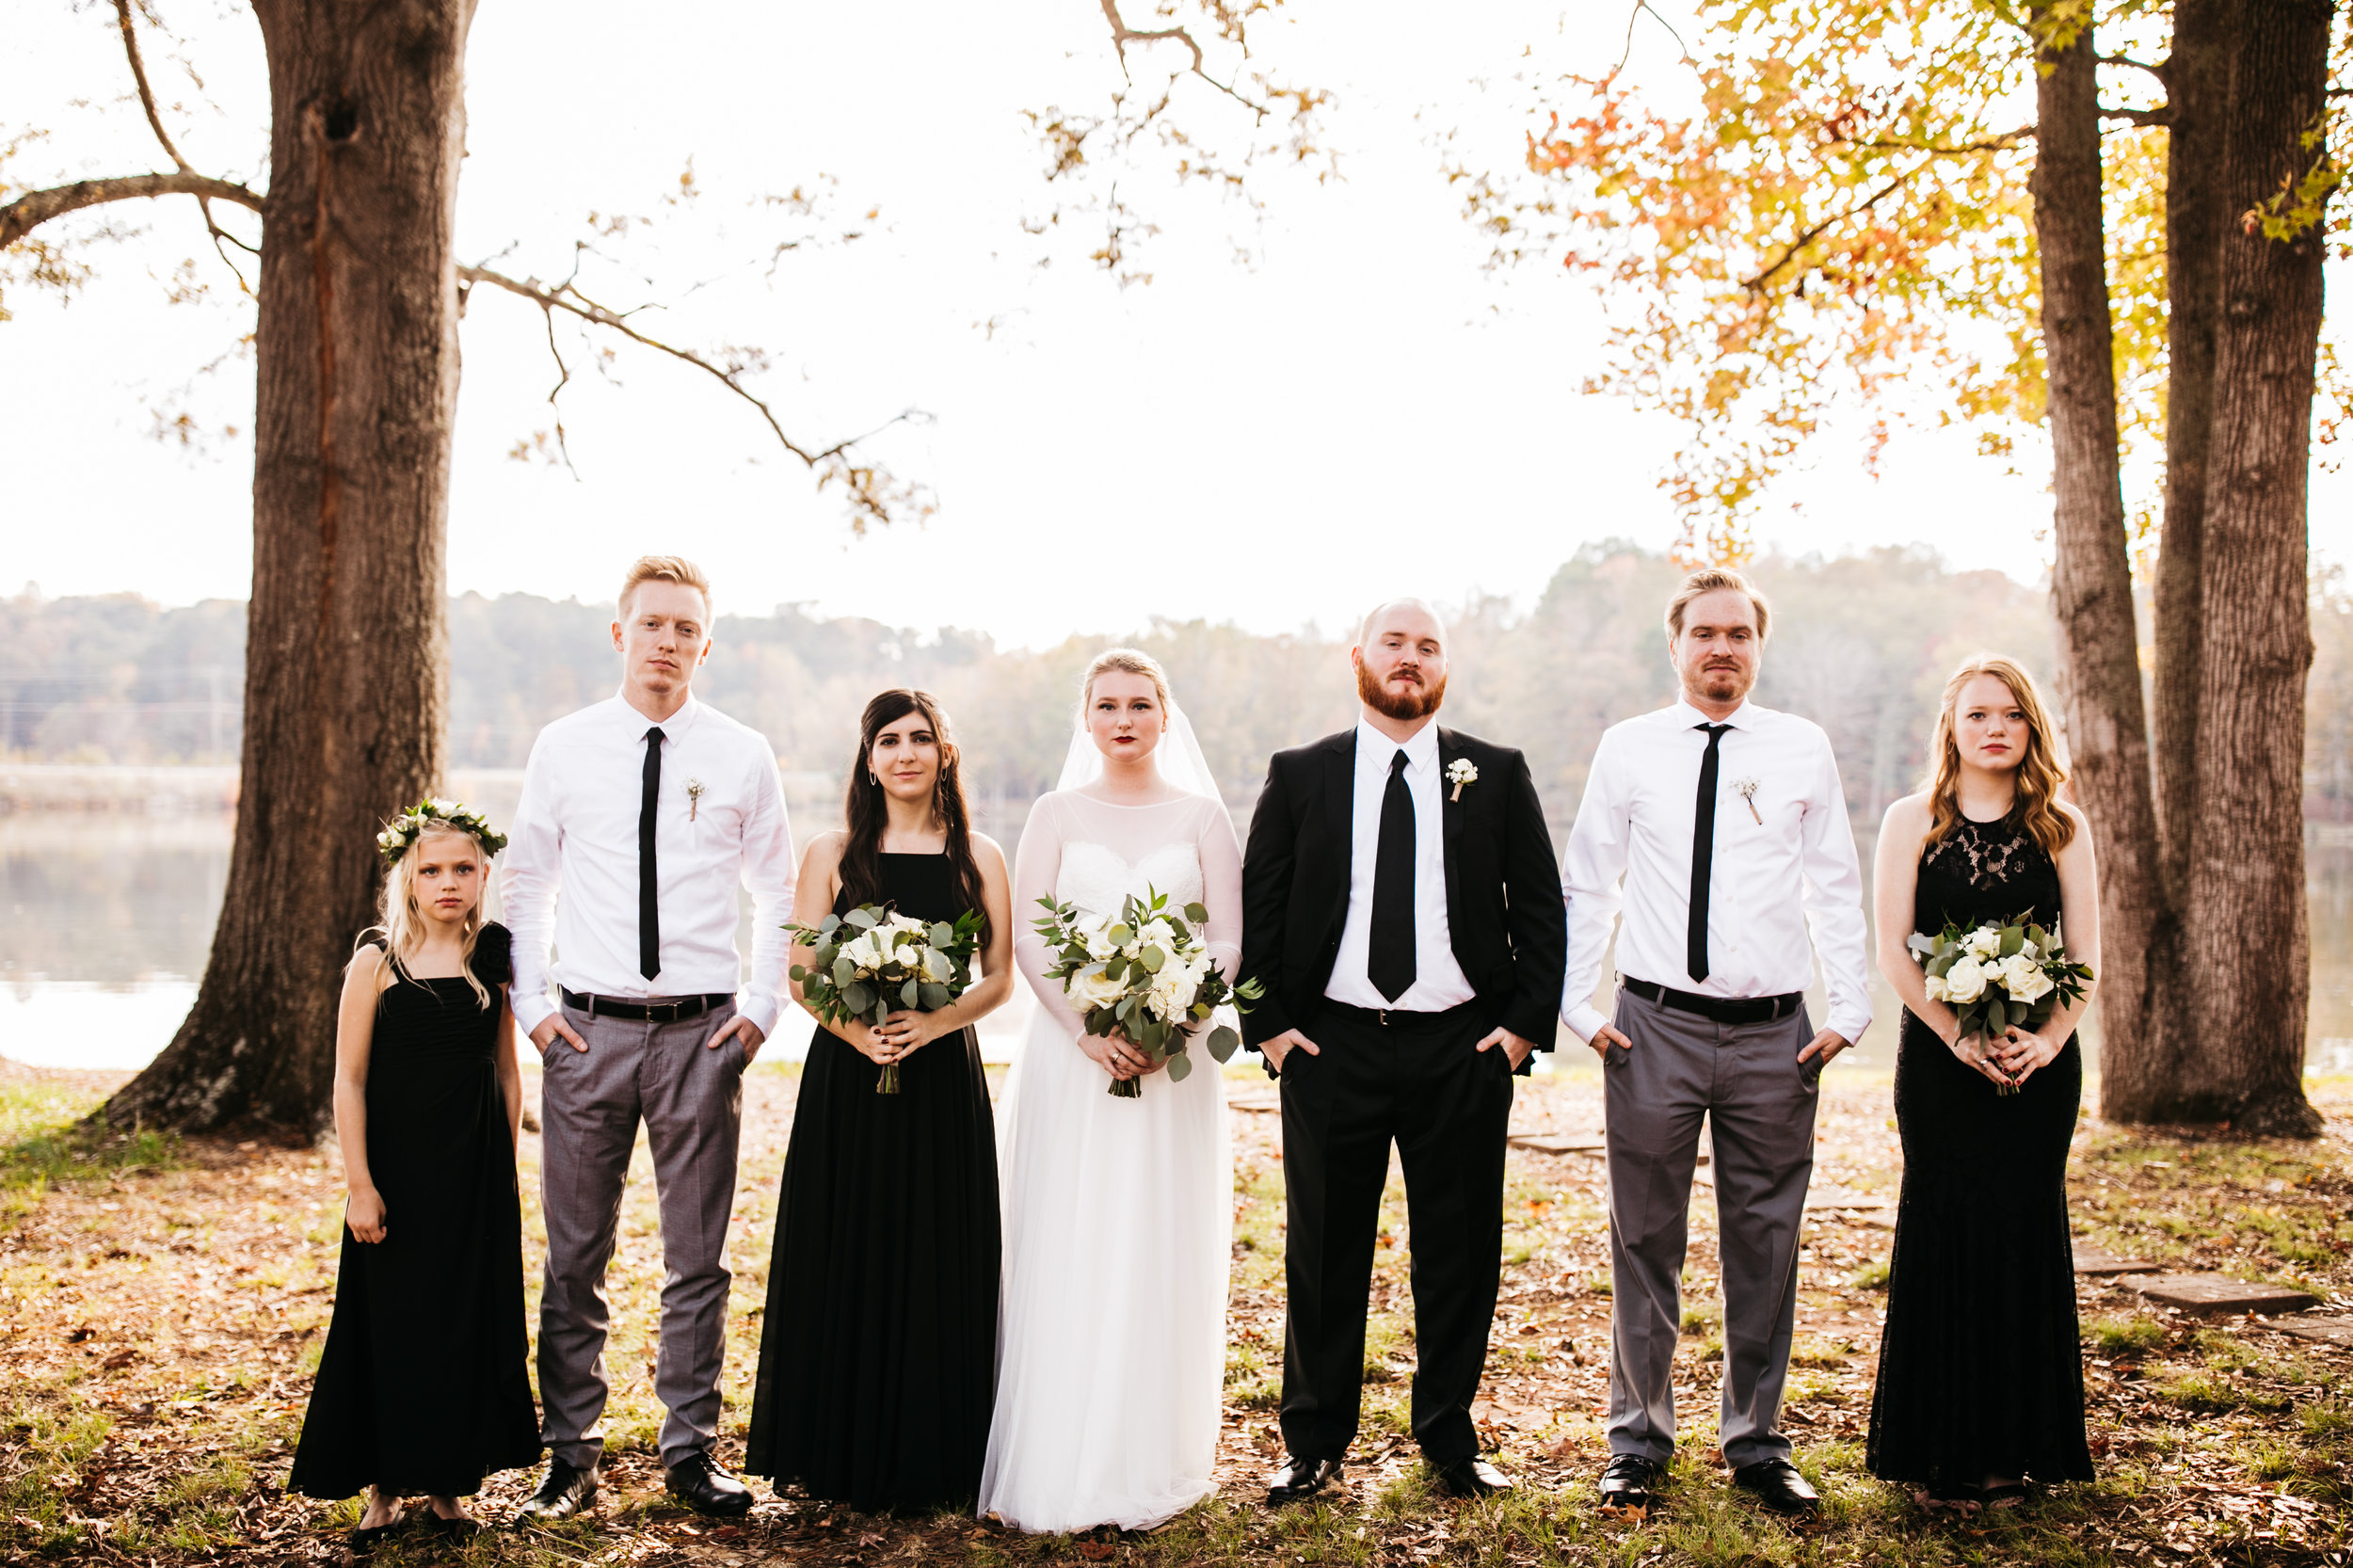 Lena & Austin-Lake-Oconee-Wedding-196.jpg